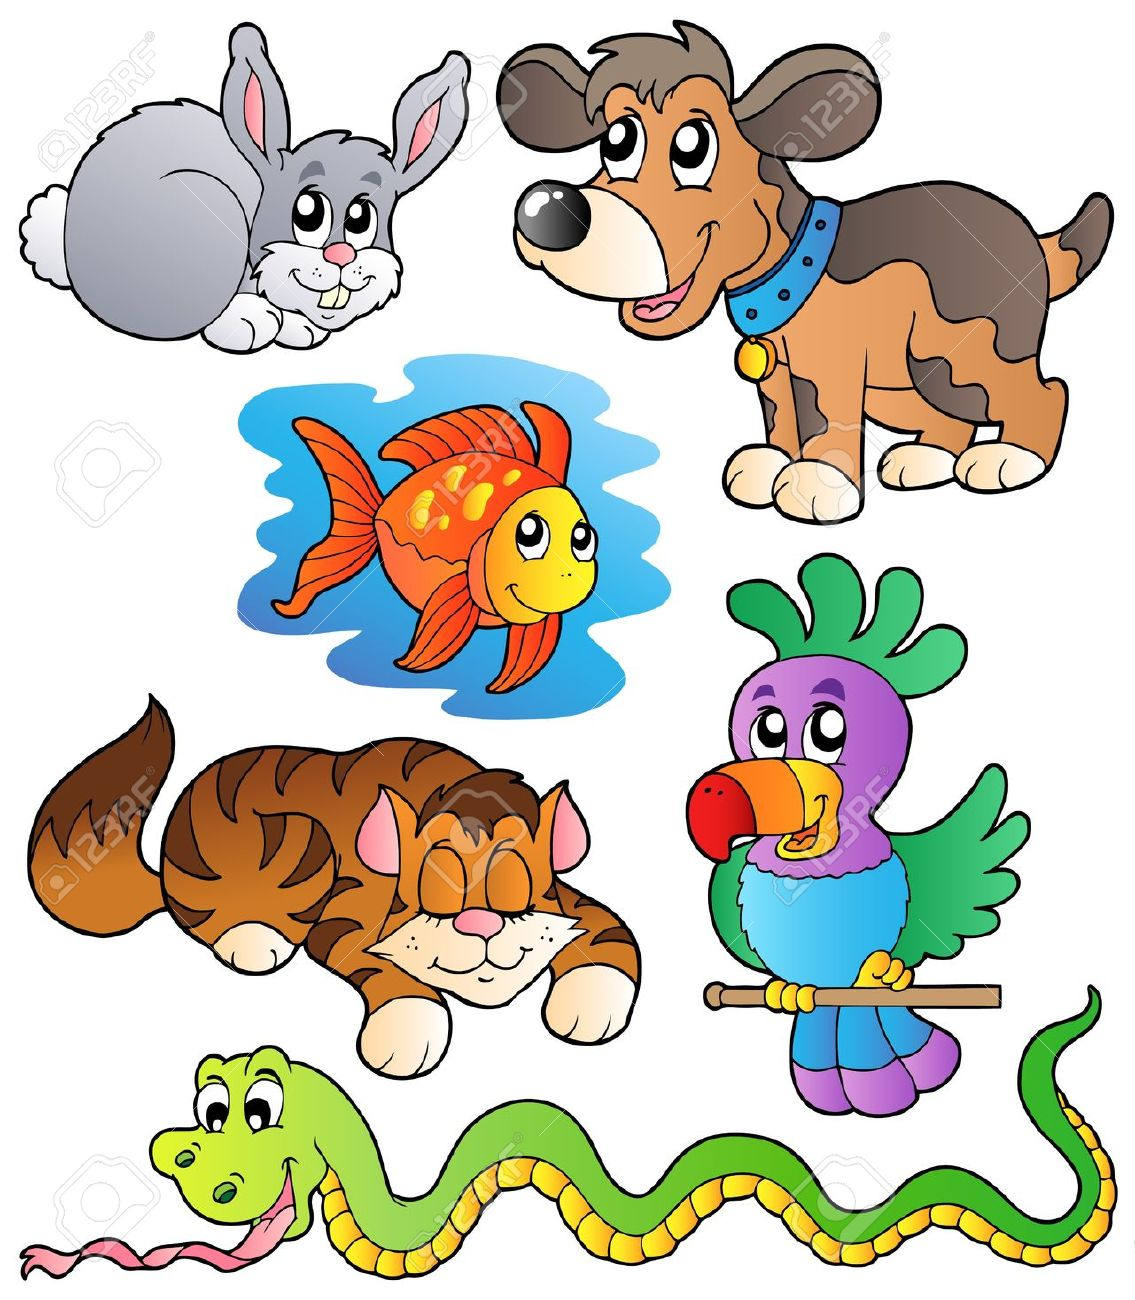 Pet clipart animal rescue Panda pet%20clipart Free Pet Images